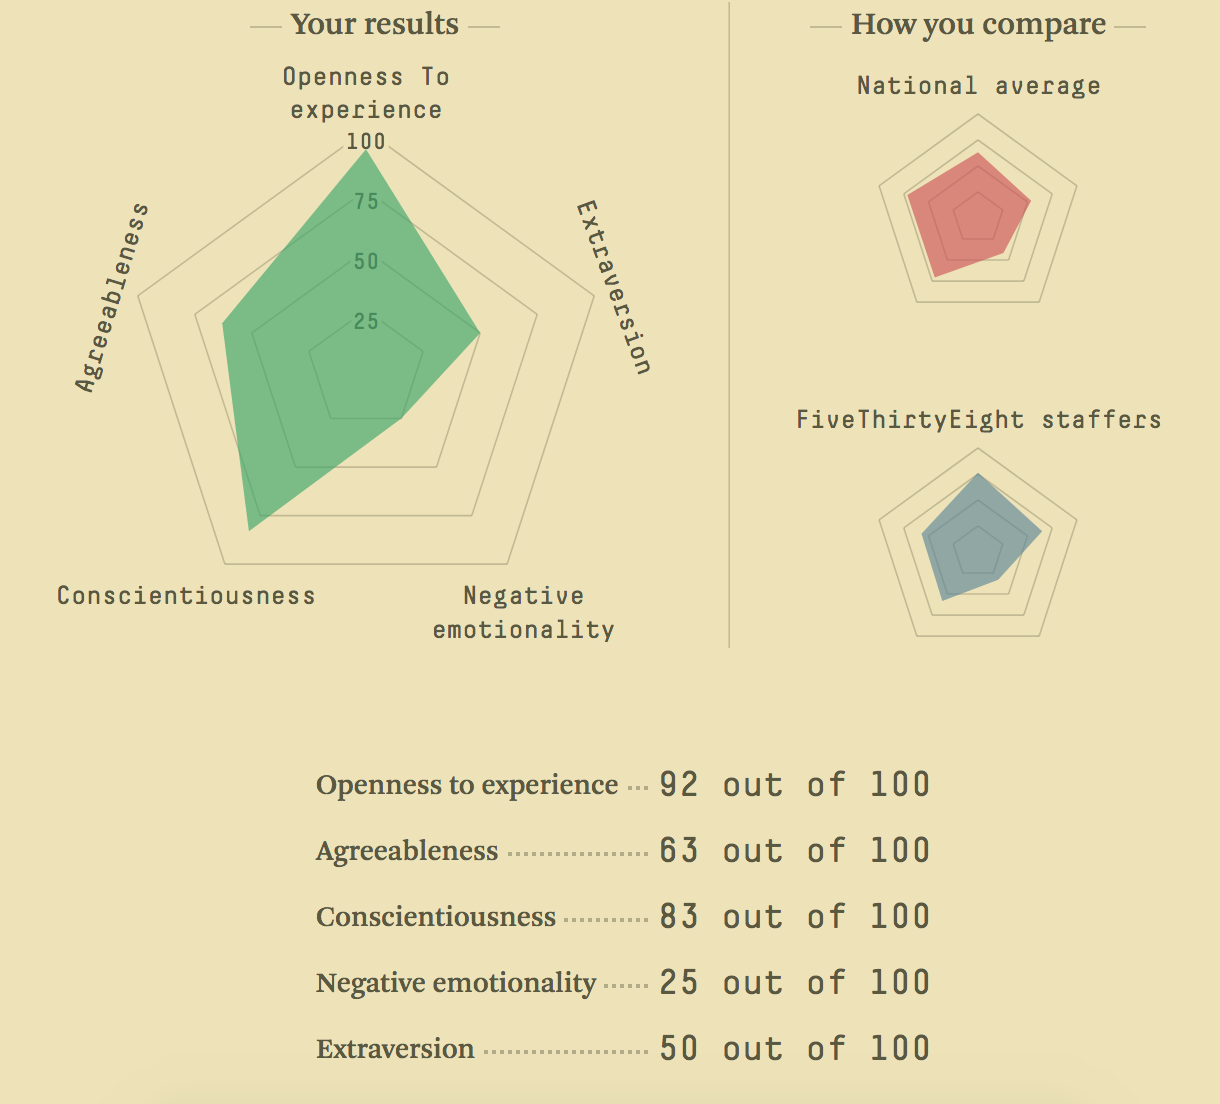 My Big 5 High openness to experience, Moderate agreeableness